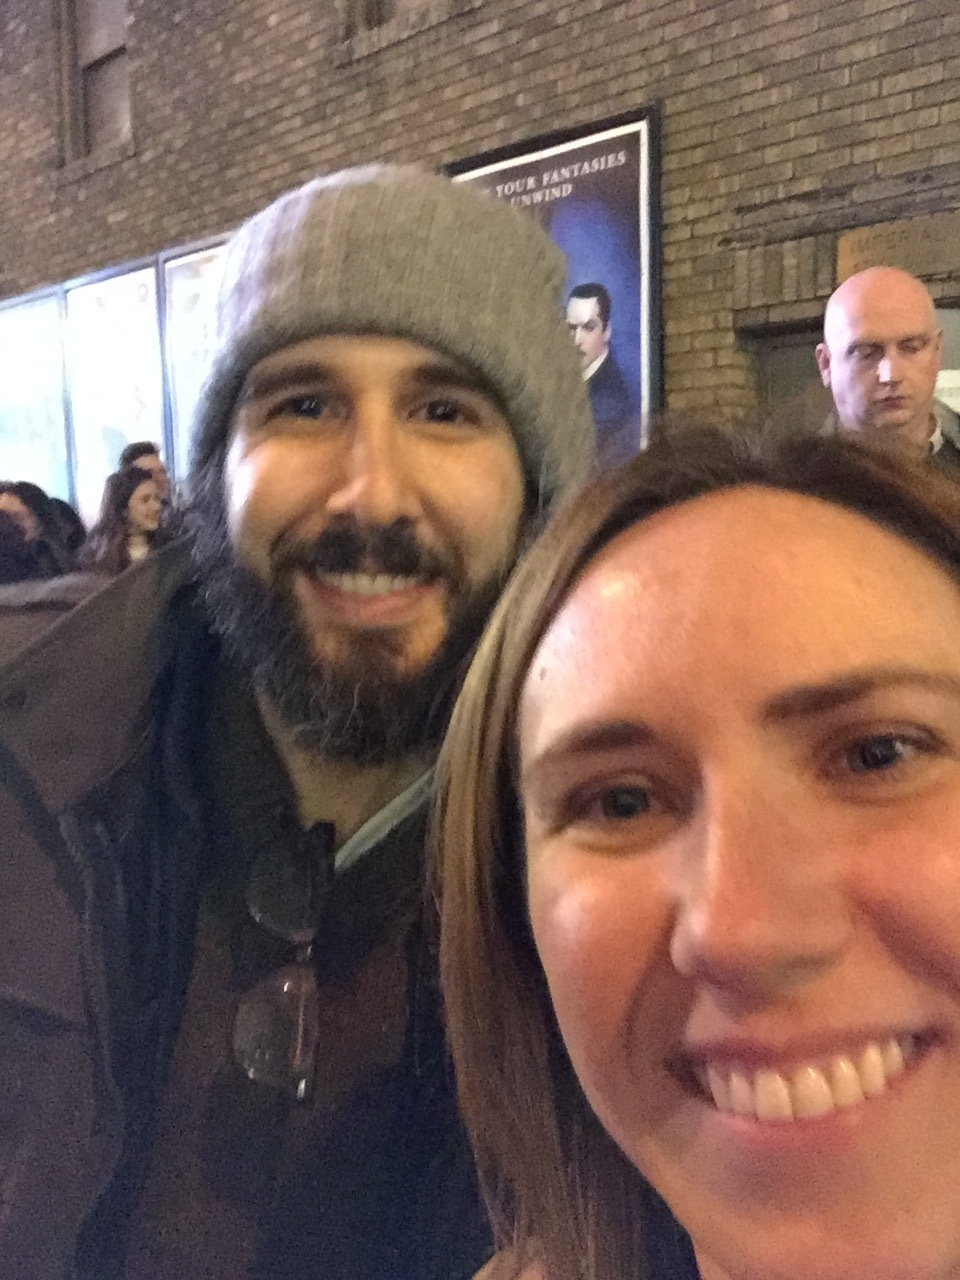 Never mind the poor quality (I'm a newbie at stage doors) - that's Josh Groban!!!